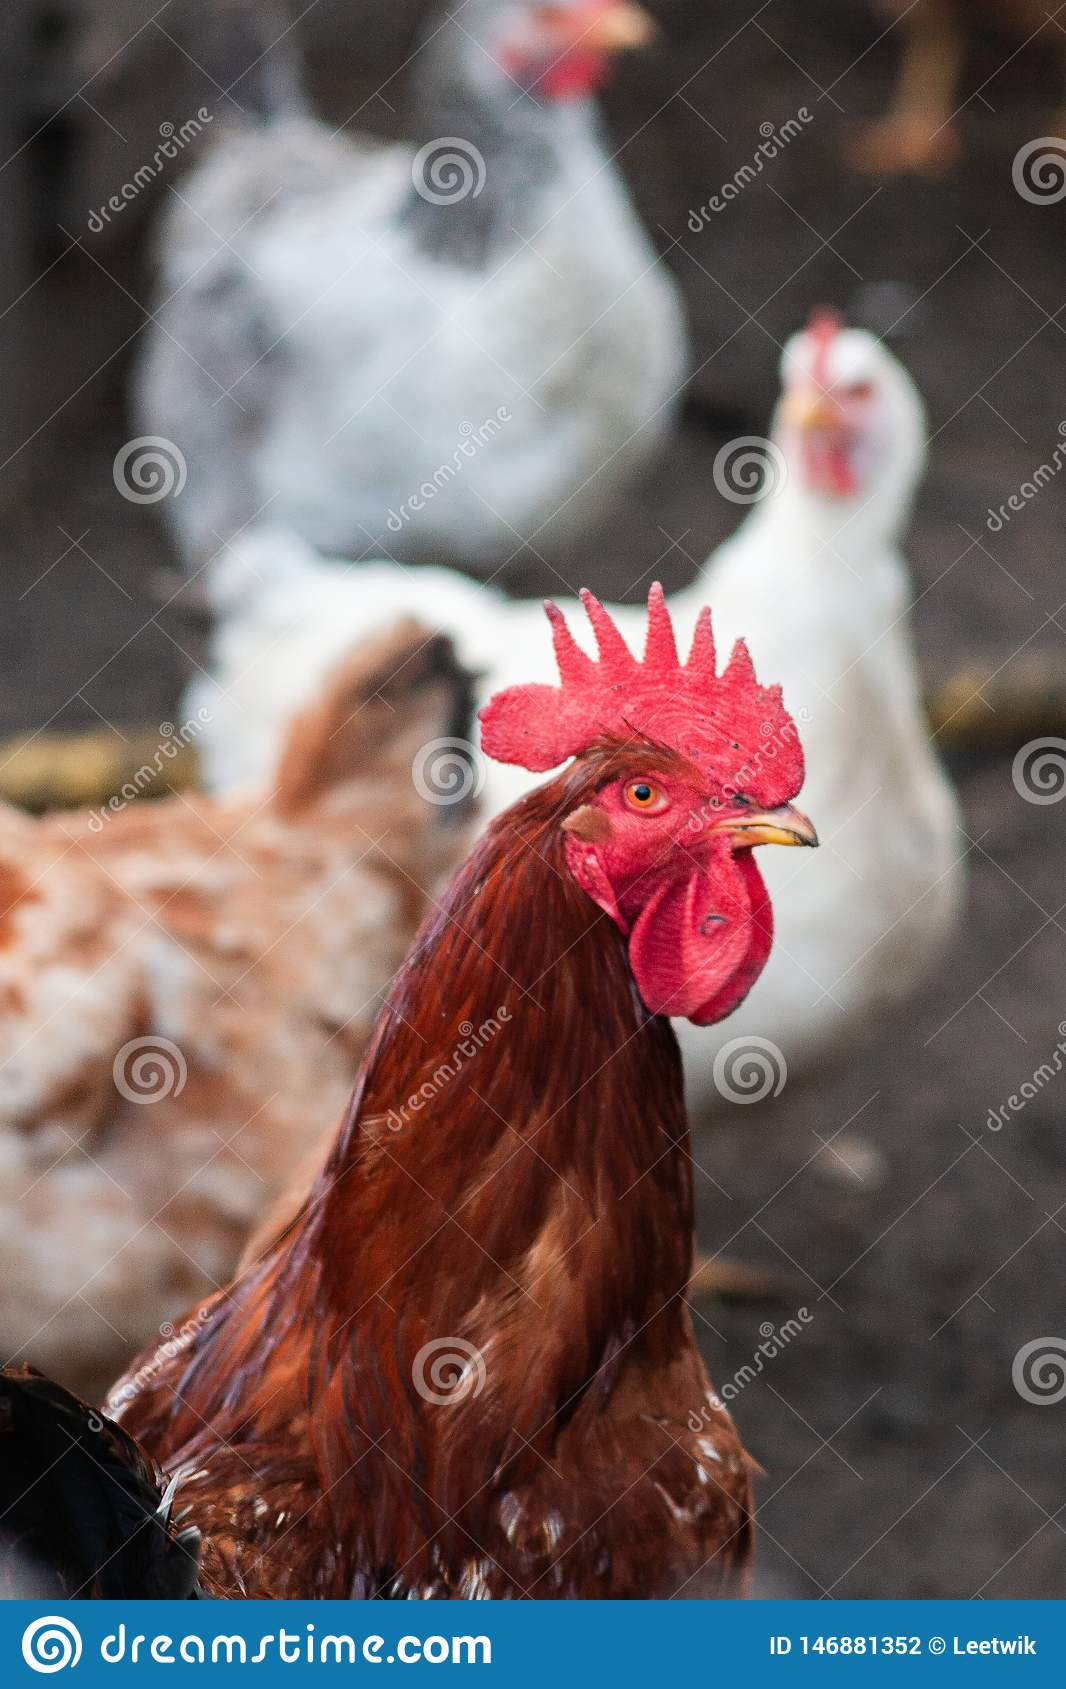 Portrait pproud red rooster close up